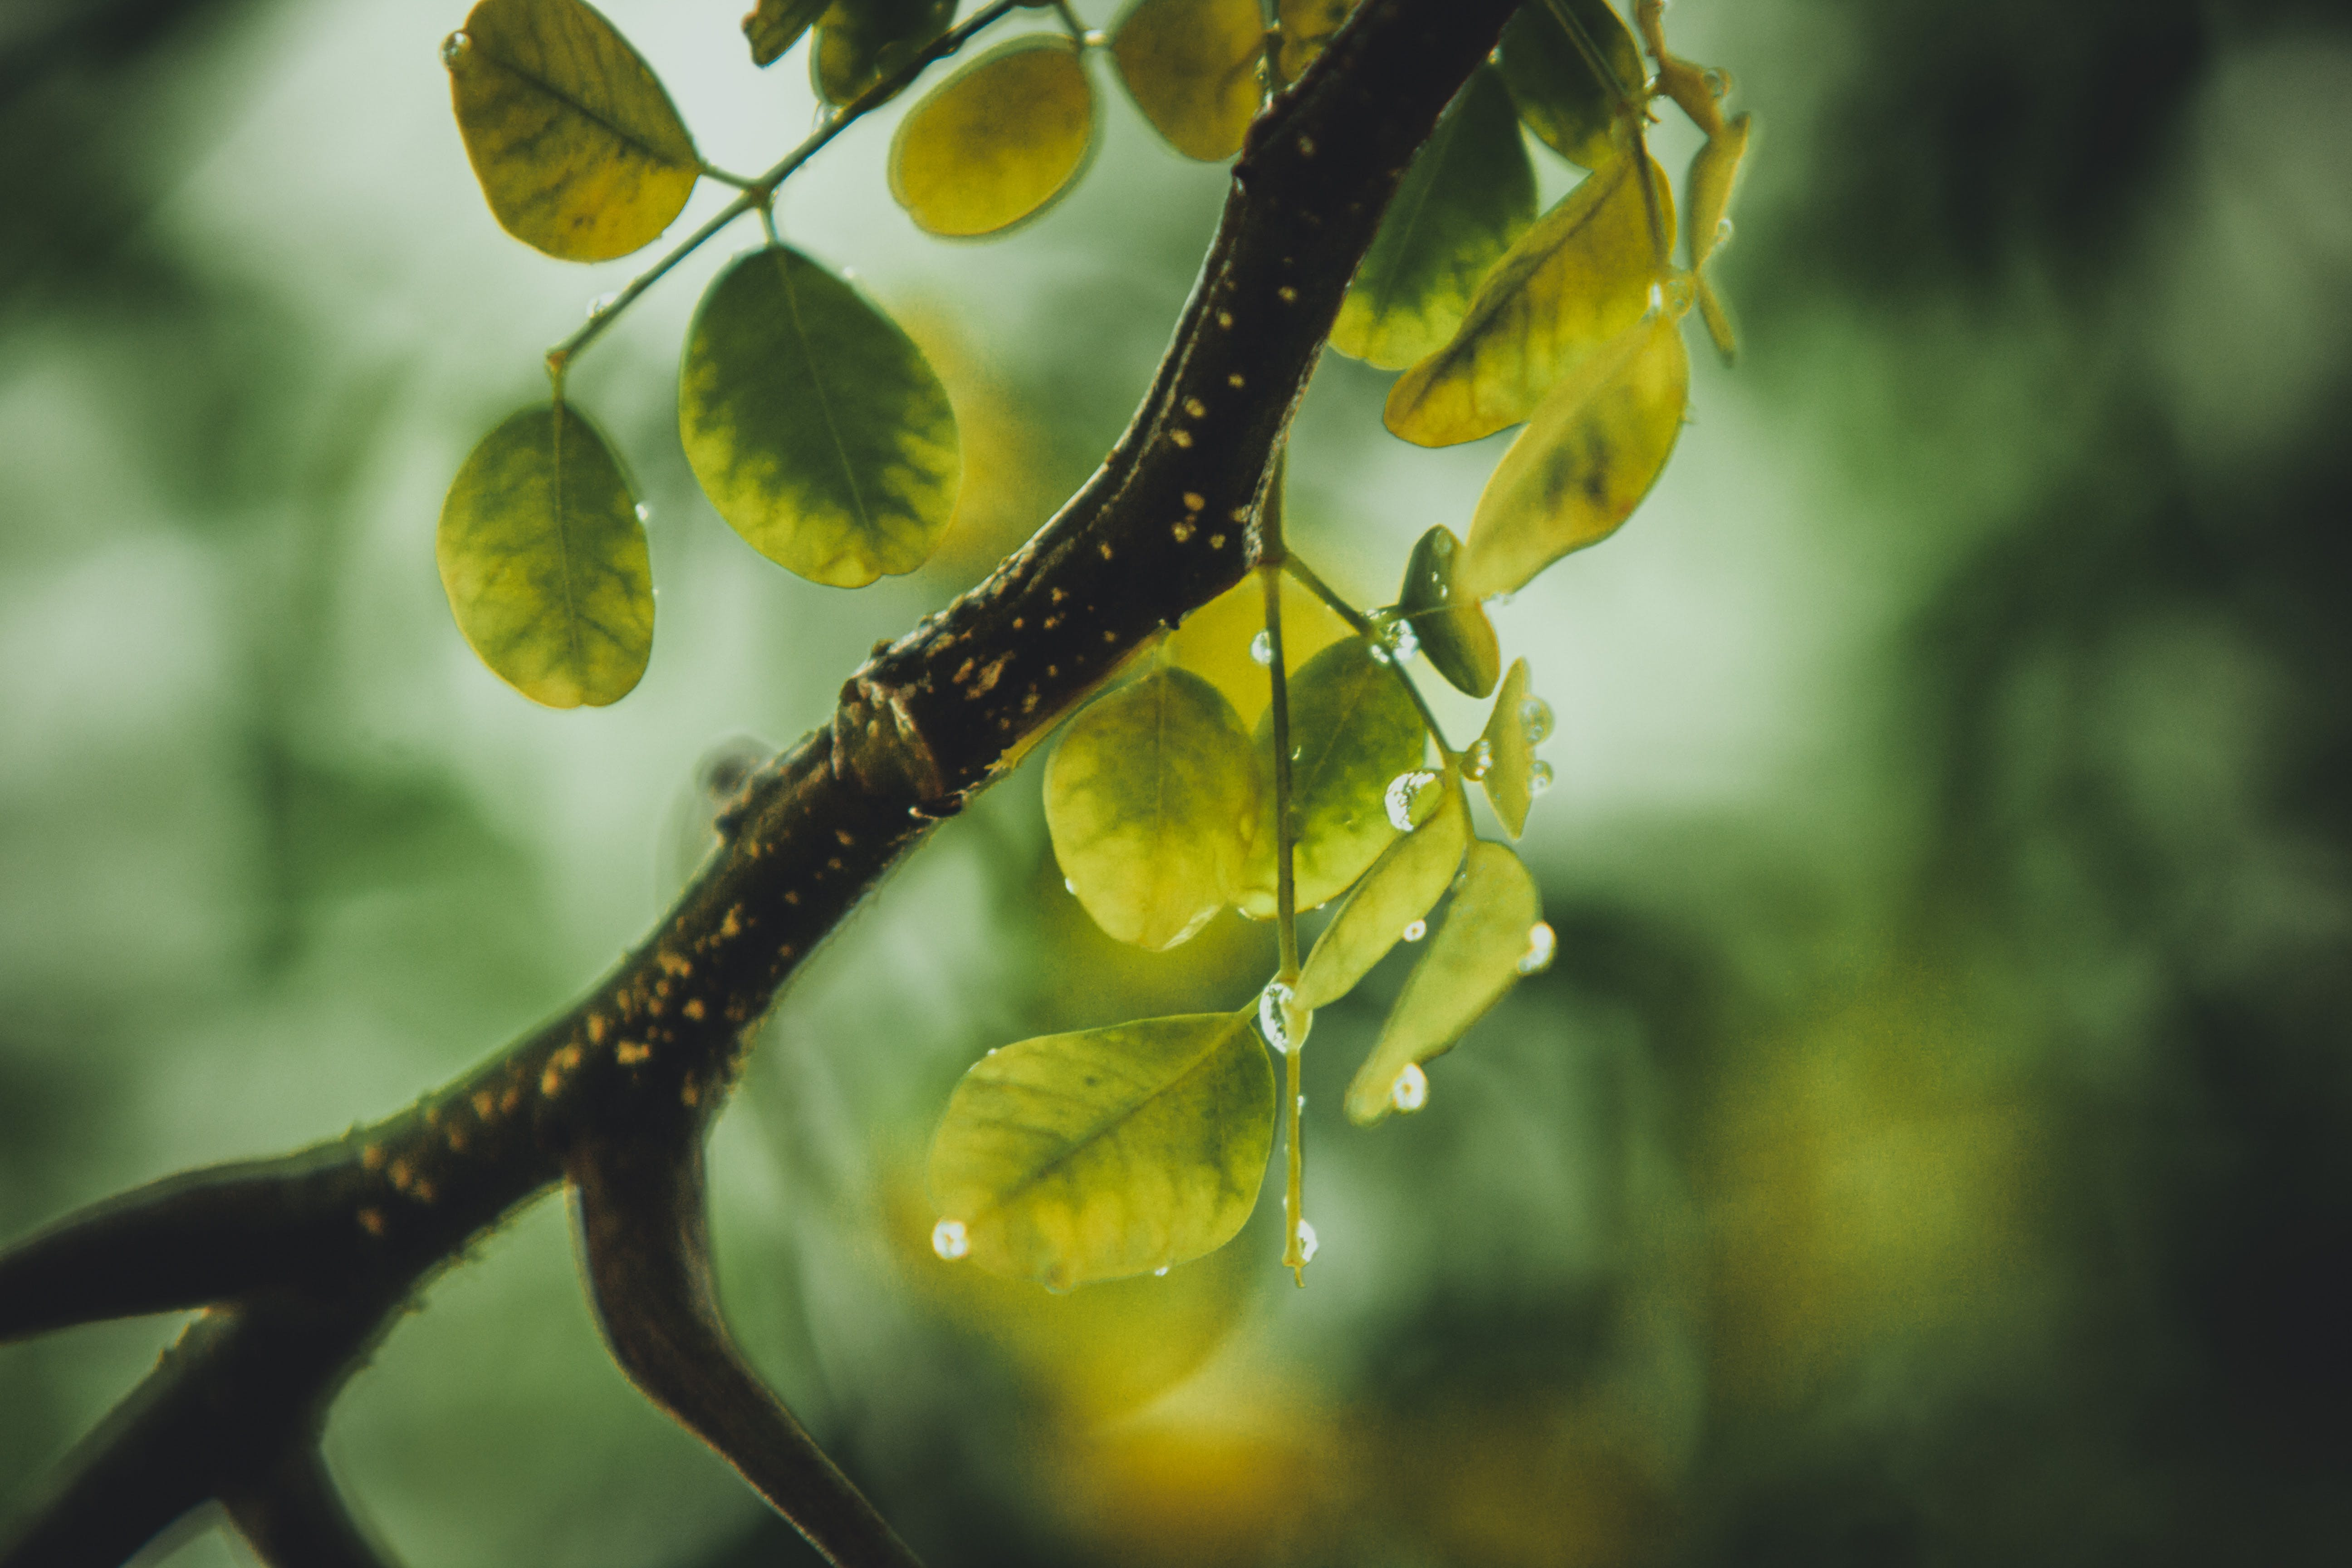 Green Leafed Plant With Water Droplets